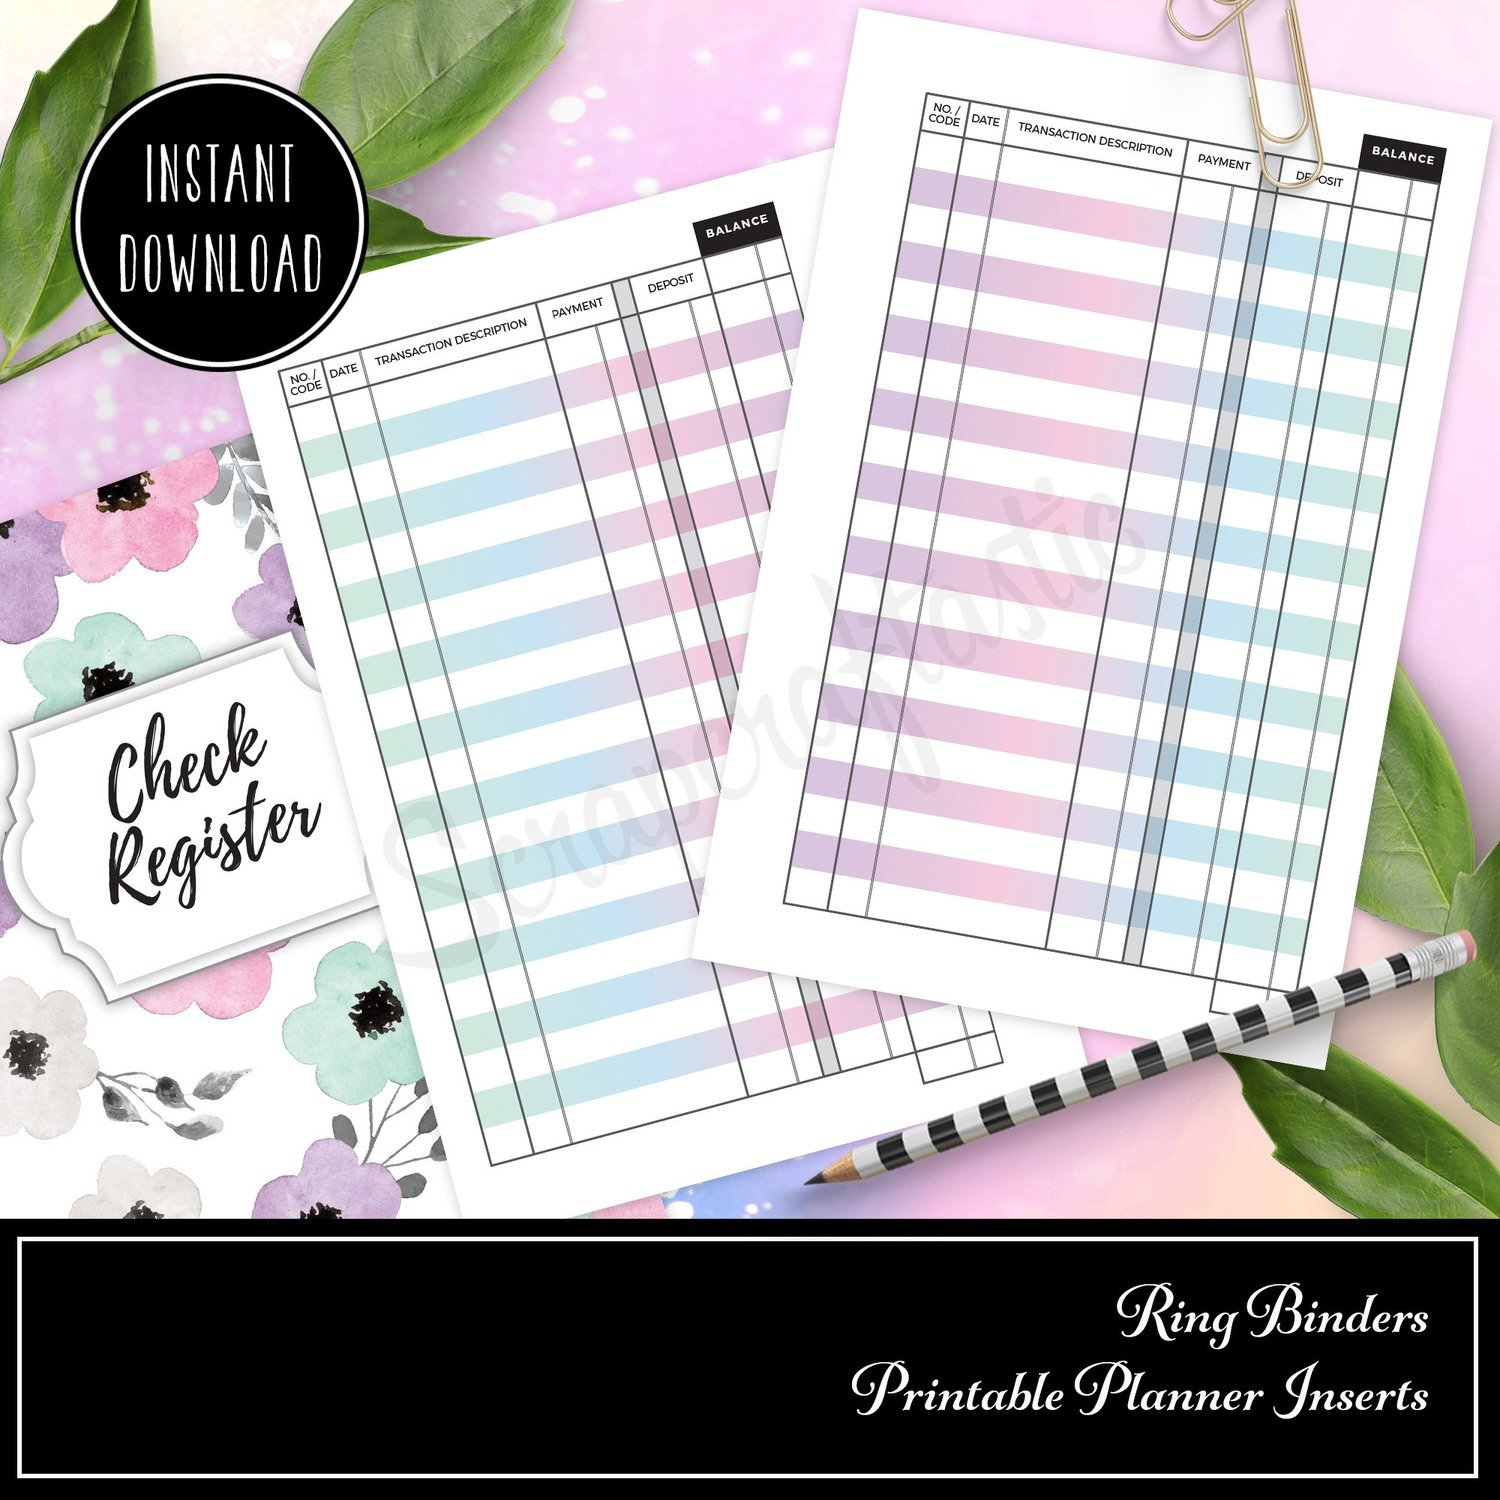 A6 RINGS - Check Register Binder Rings Printable Insert